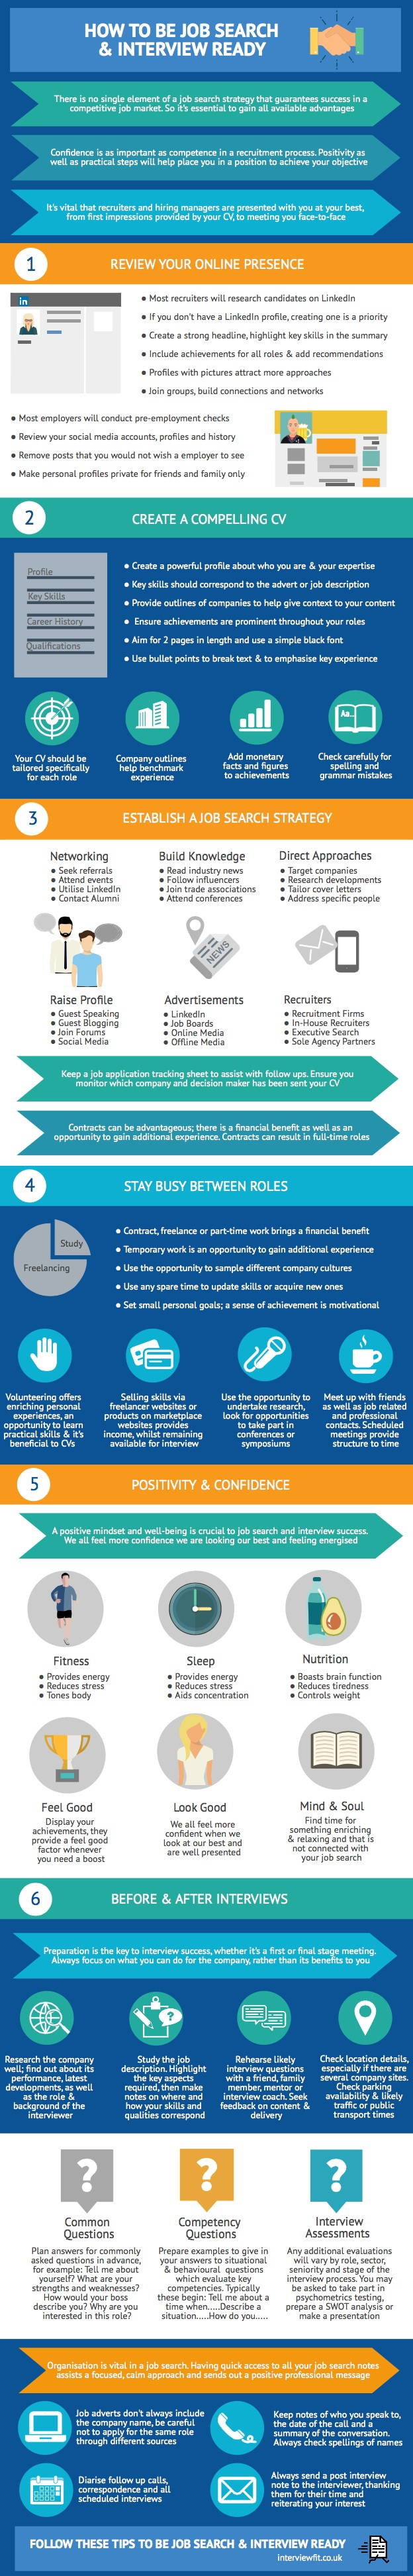 how to be job search and interview ready infographic e learning how to be job search and interview ready infographic